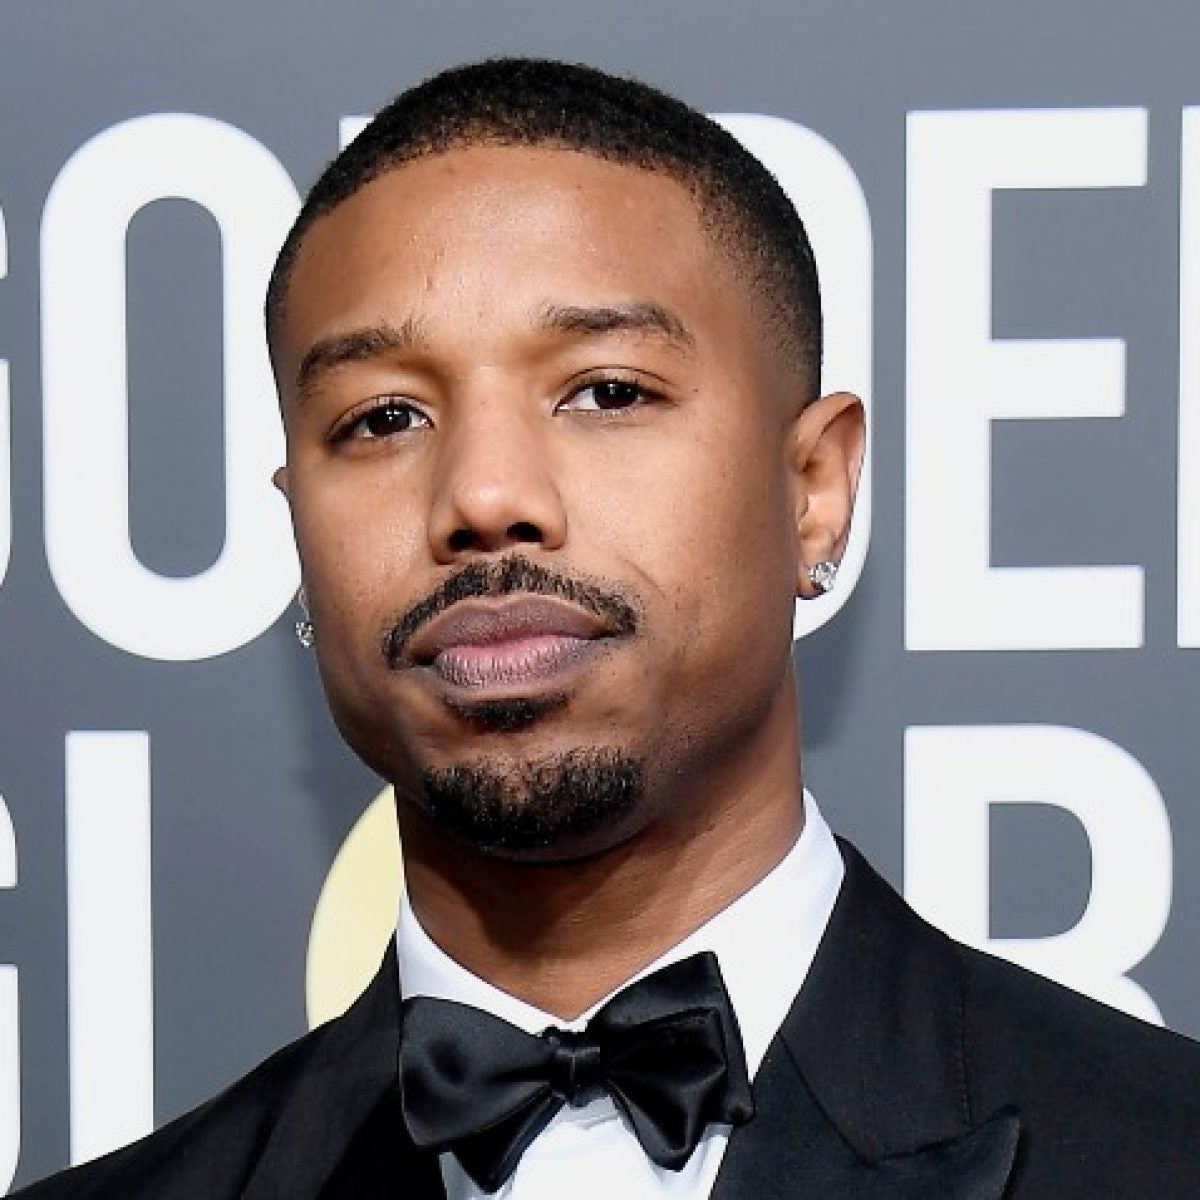 """Actor Michael B. Jordan Faced Backlash Over Launch of Rum Brand """"J'Ouvert,"""" Now Promises a Name Change"""